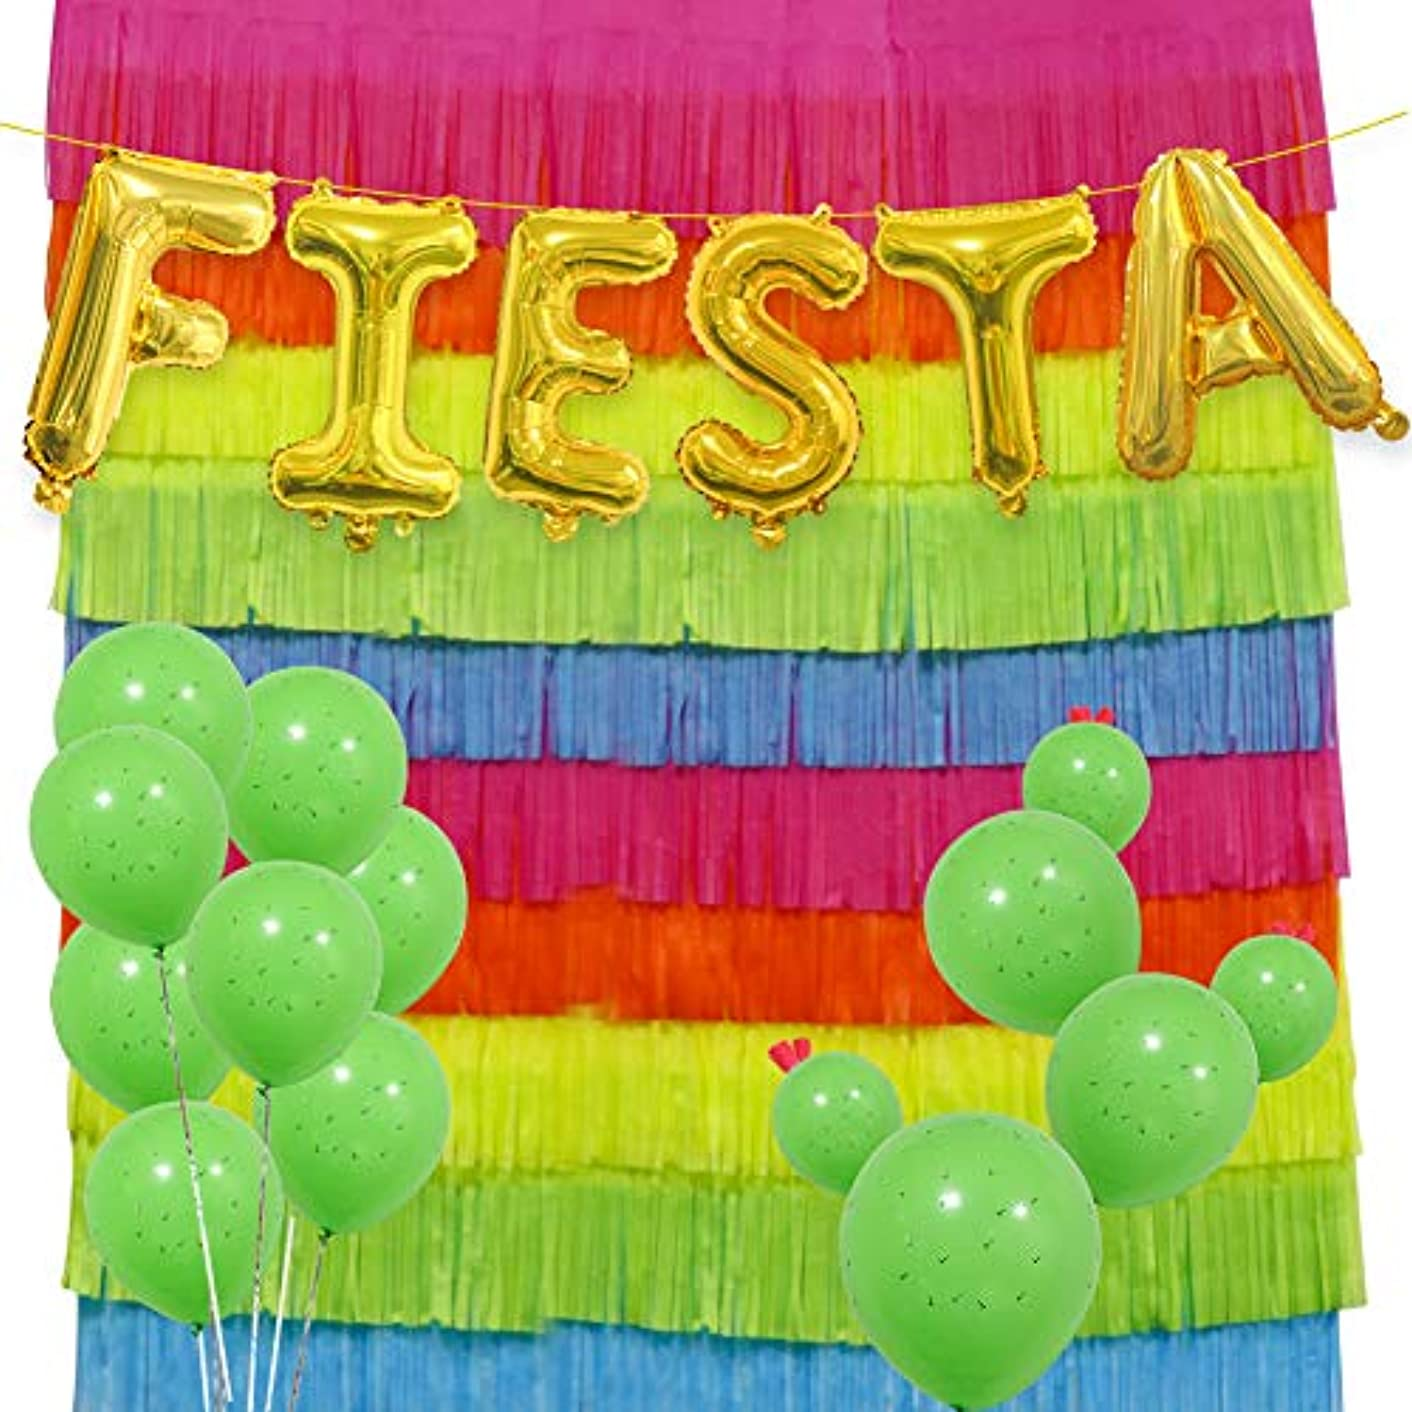 Fiesta Party Decorations Set, 16 INCH Fiesta Mylar Letter Balloons Cinco De Mayo Mexican Festival Paper Fringe Garland Photography Background Cactus Latex Balloons for Party Supplies